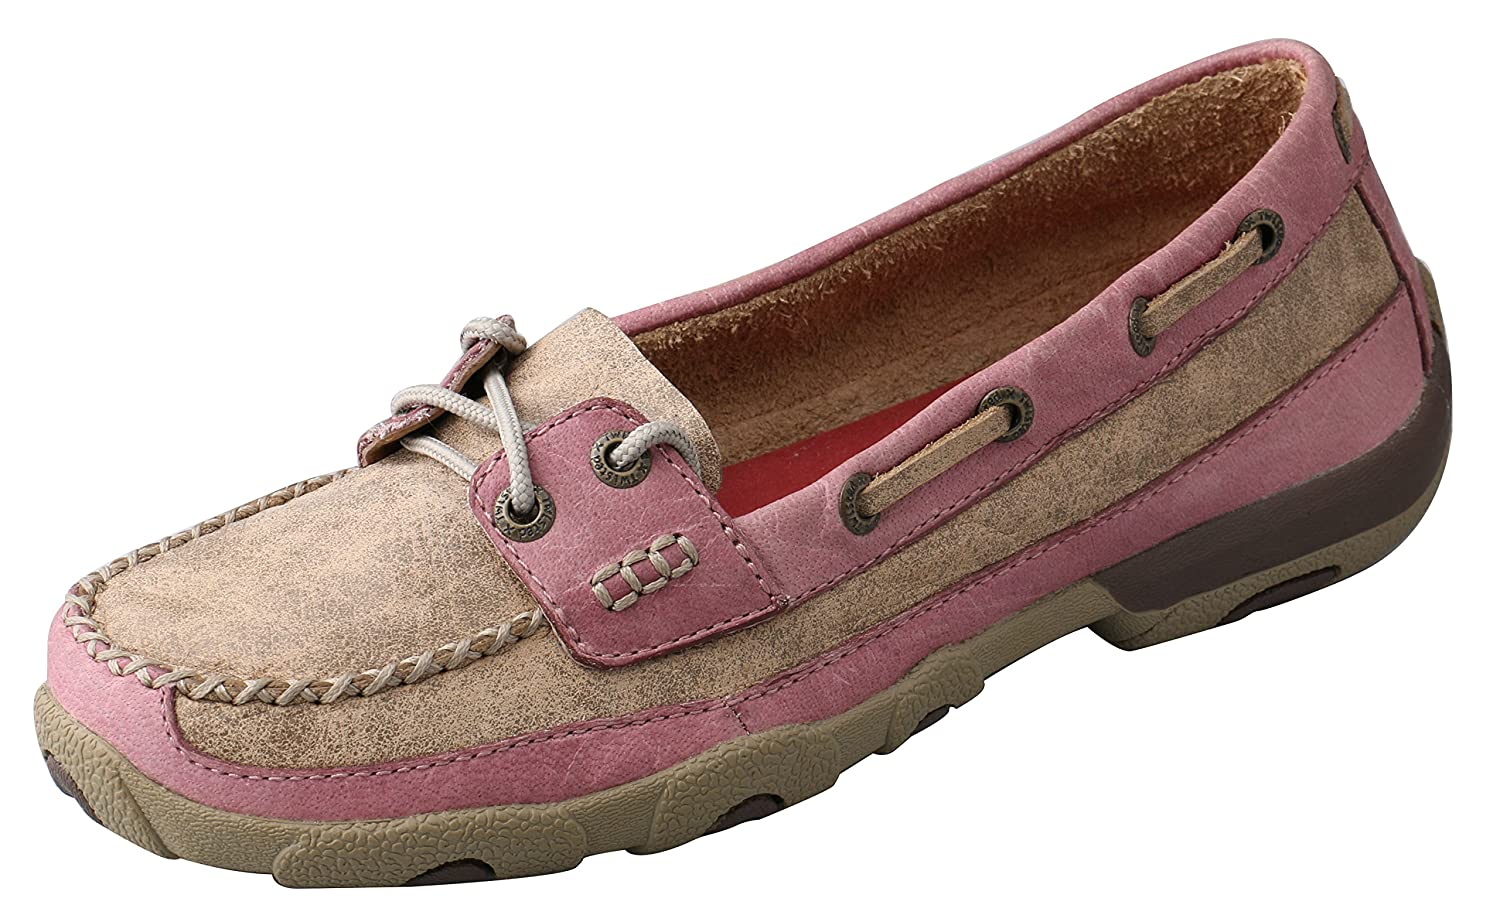 Twisted X Women's Leather Lace-up Rubber Sole Driving Moccasins - Bomber/Pink B00INZK39M 9.5|Brown